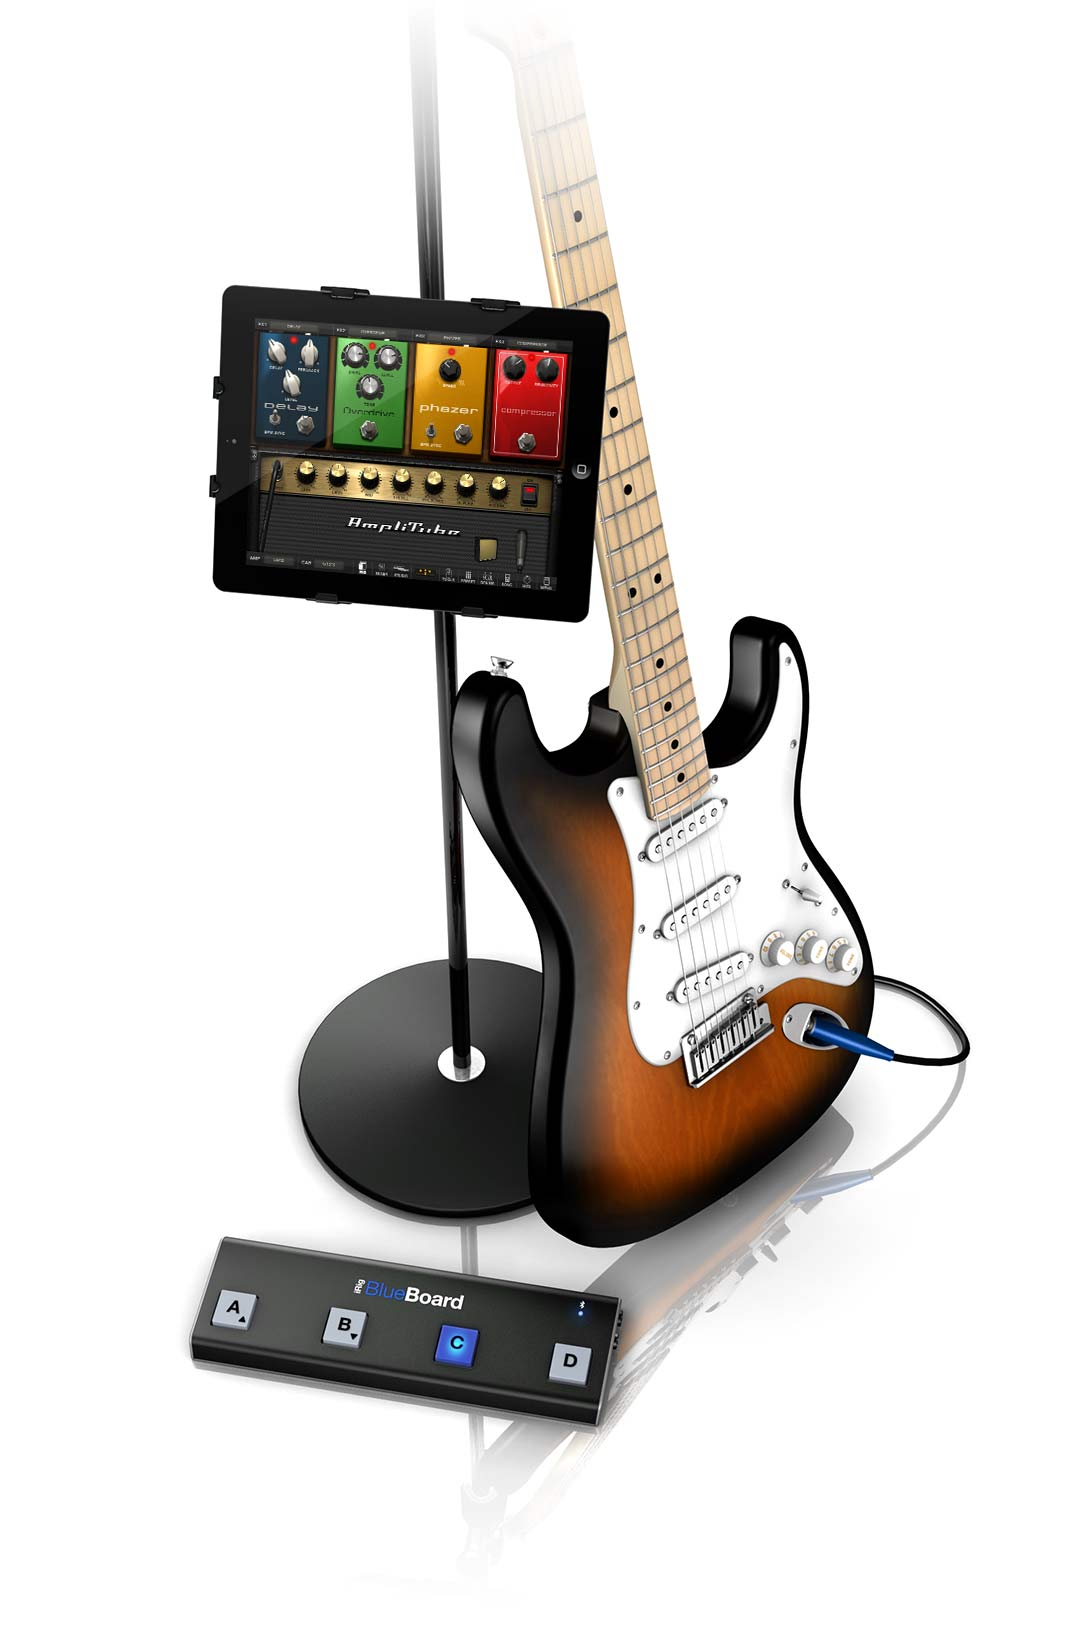 Ik Multimedia Irig Blueboard D Box Fuse 30 Amp Square Features Four Backlit Soft Touch Pads Housed In A Sturdy Stage Worthy Chassis Two Trs Expansion Jacks For Connecting Additional Midi